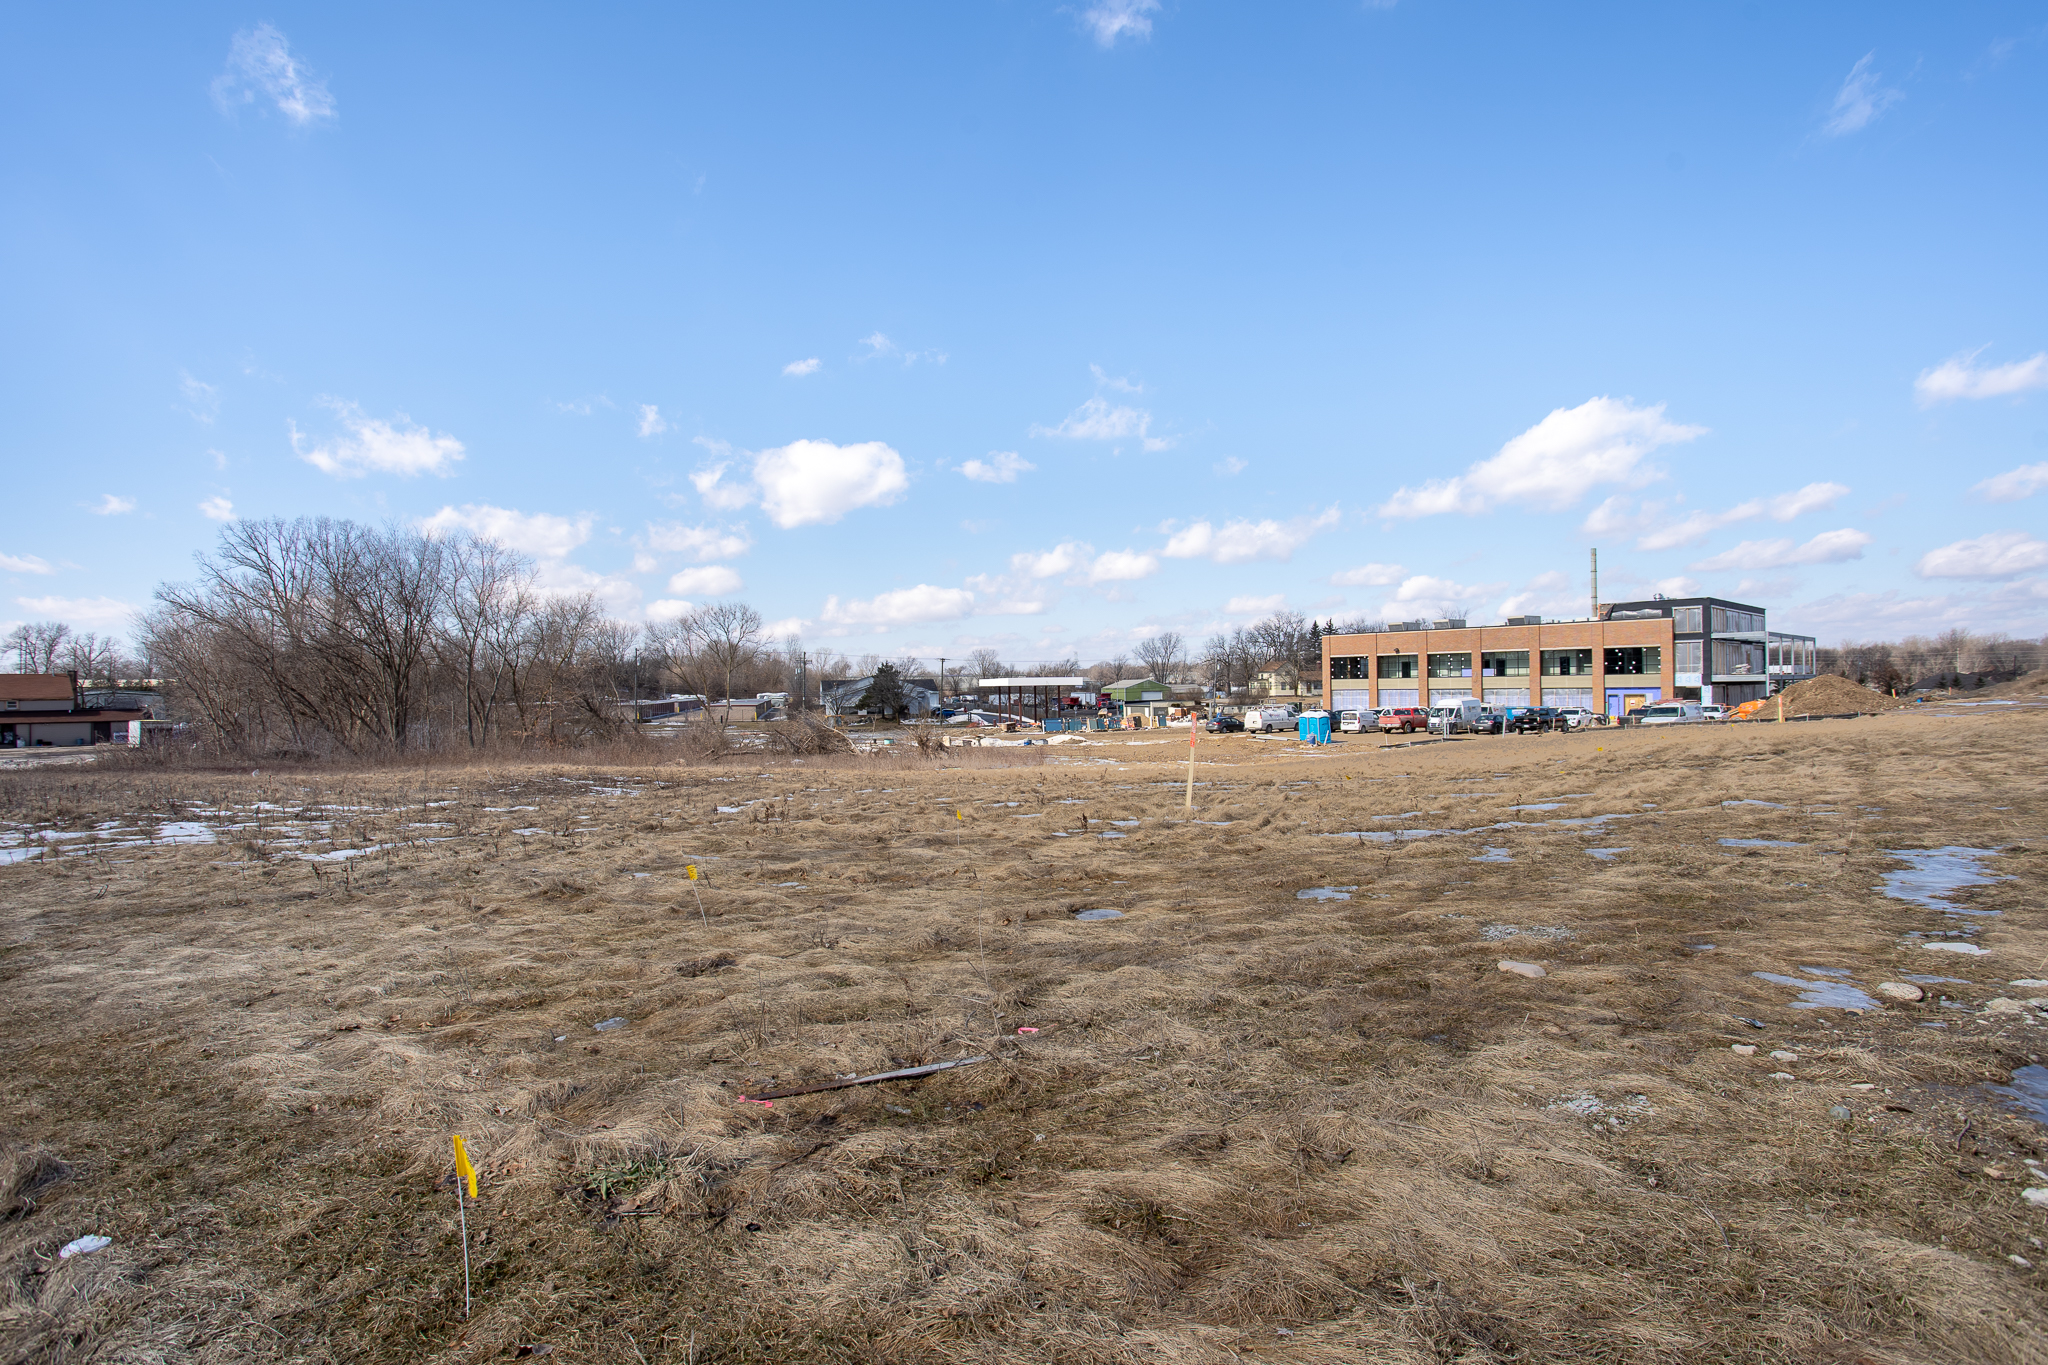 7880 Andersonville Rd, Clarkston, Michigan 48346, ,Retail,For Lease,Independence Plaza,7880 Andersonville Rd,1031